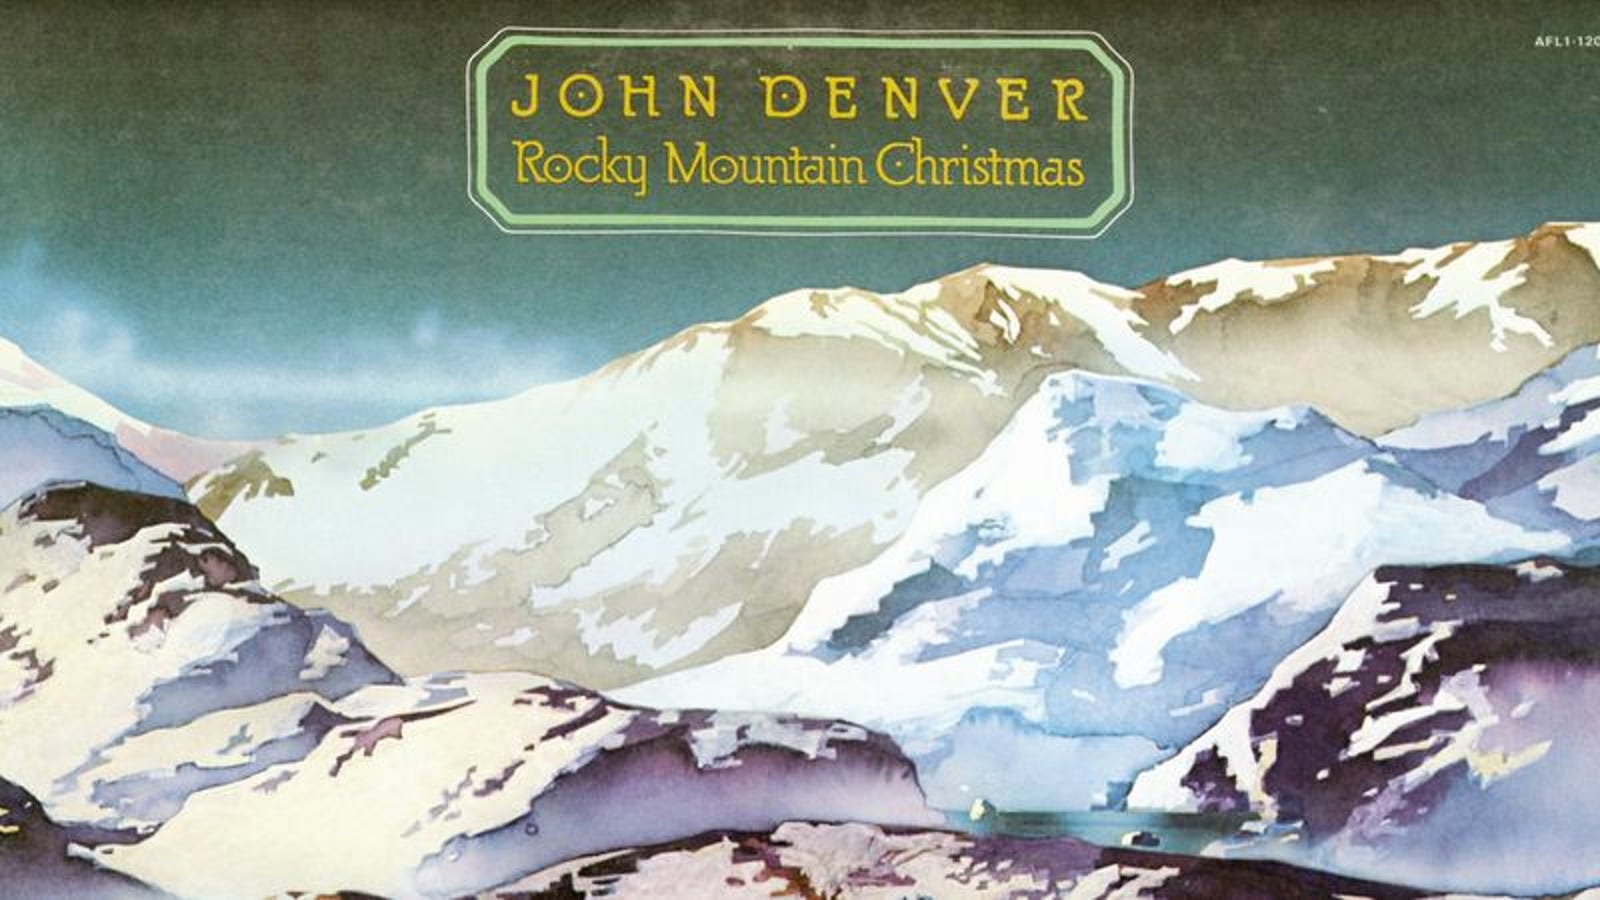 The Decemberists and John Denver plead for a sober father this Christmas